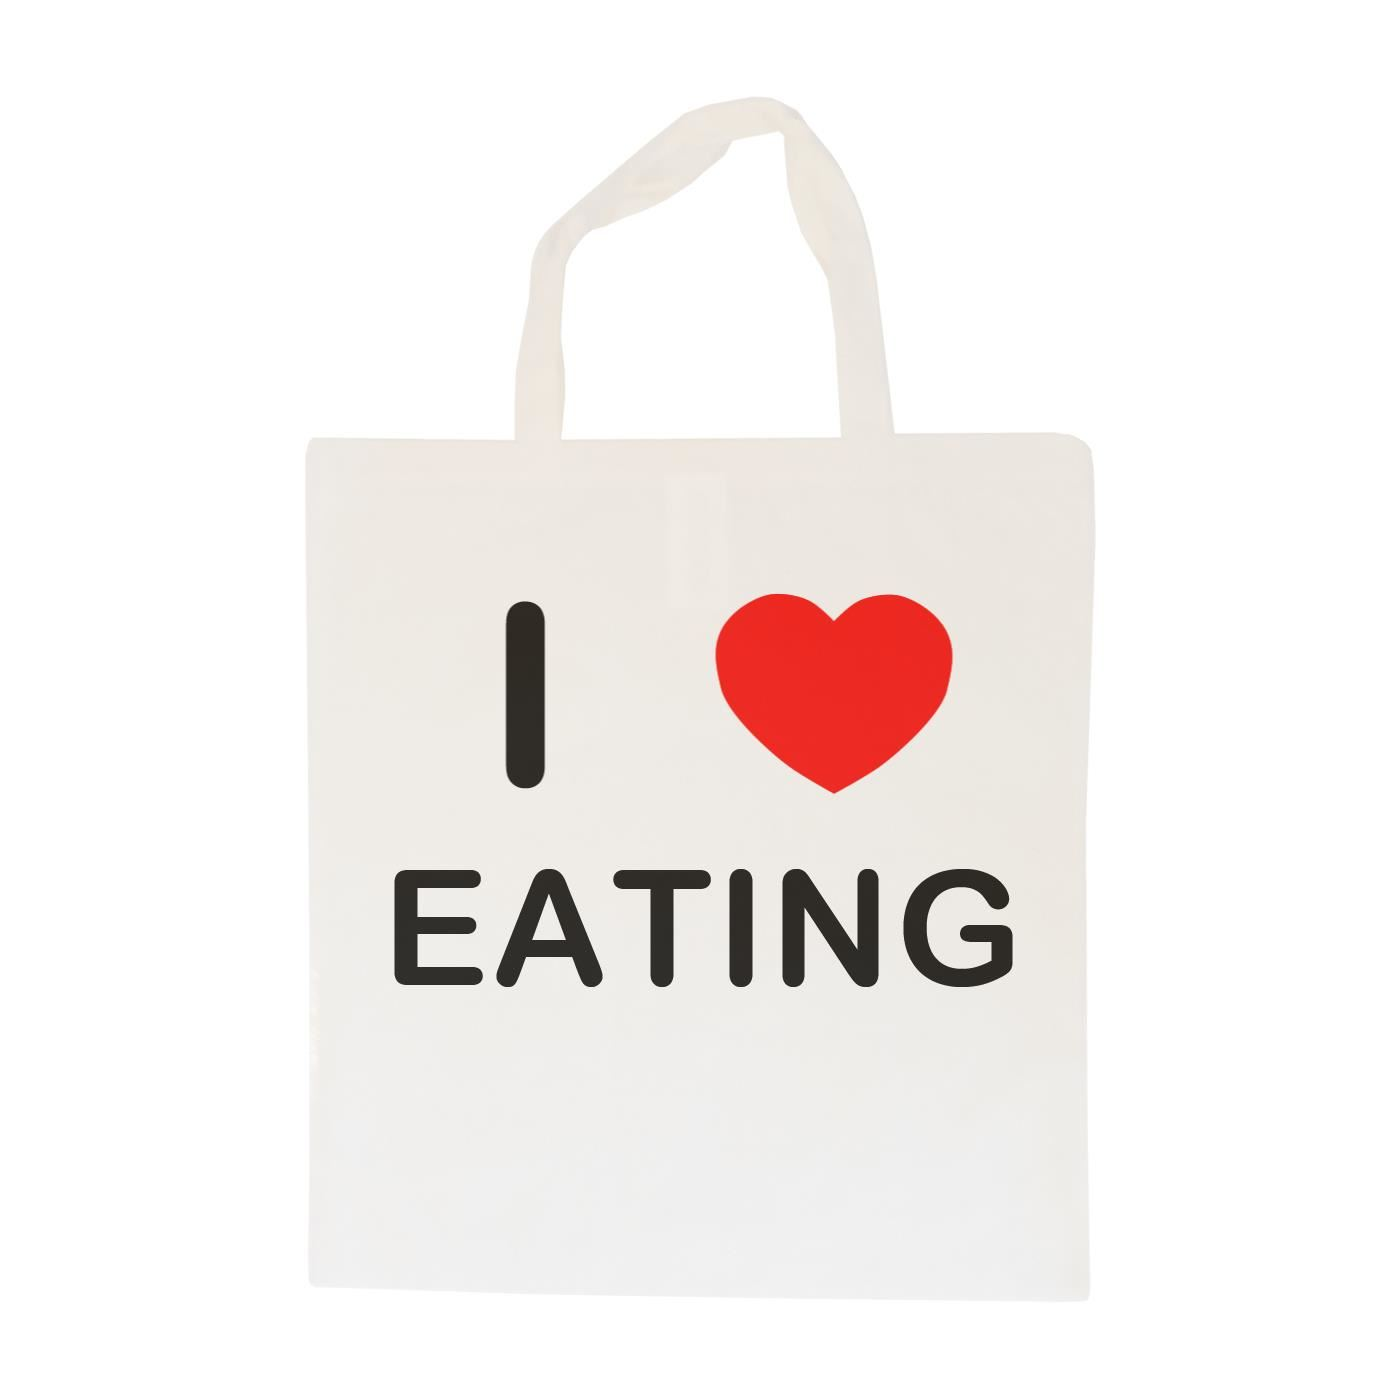 I Love Eating - Cotton Bag | Size choice Tote, Shopper or Sling